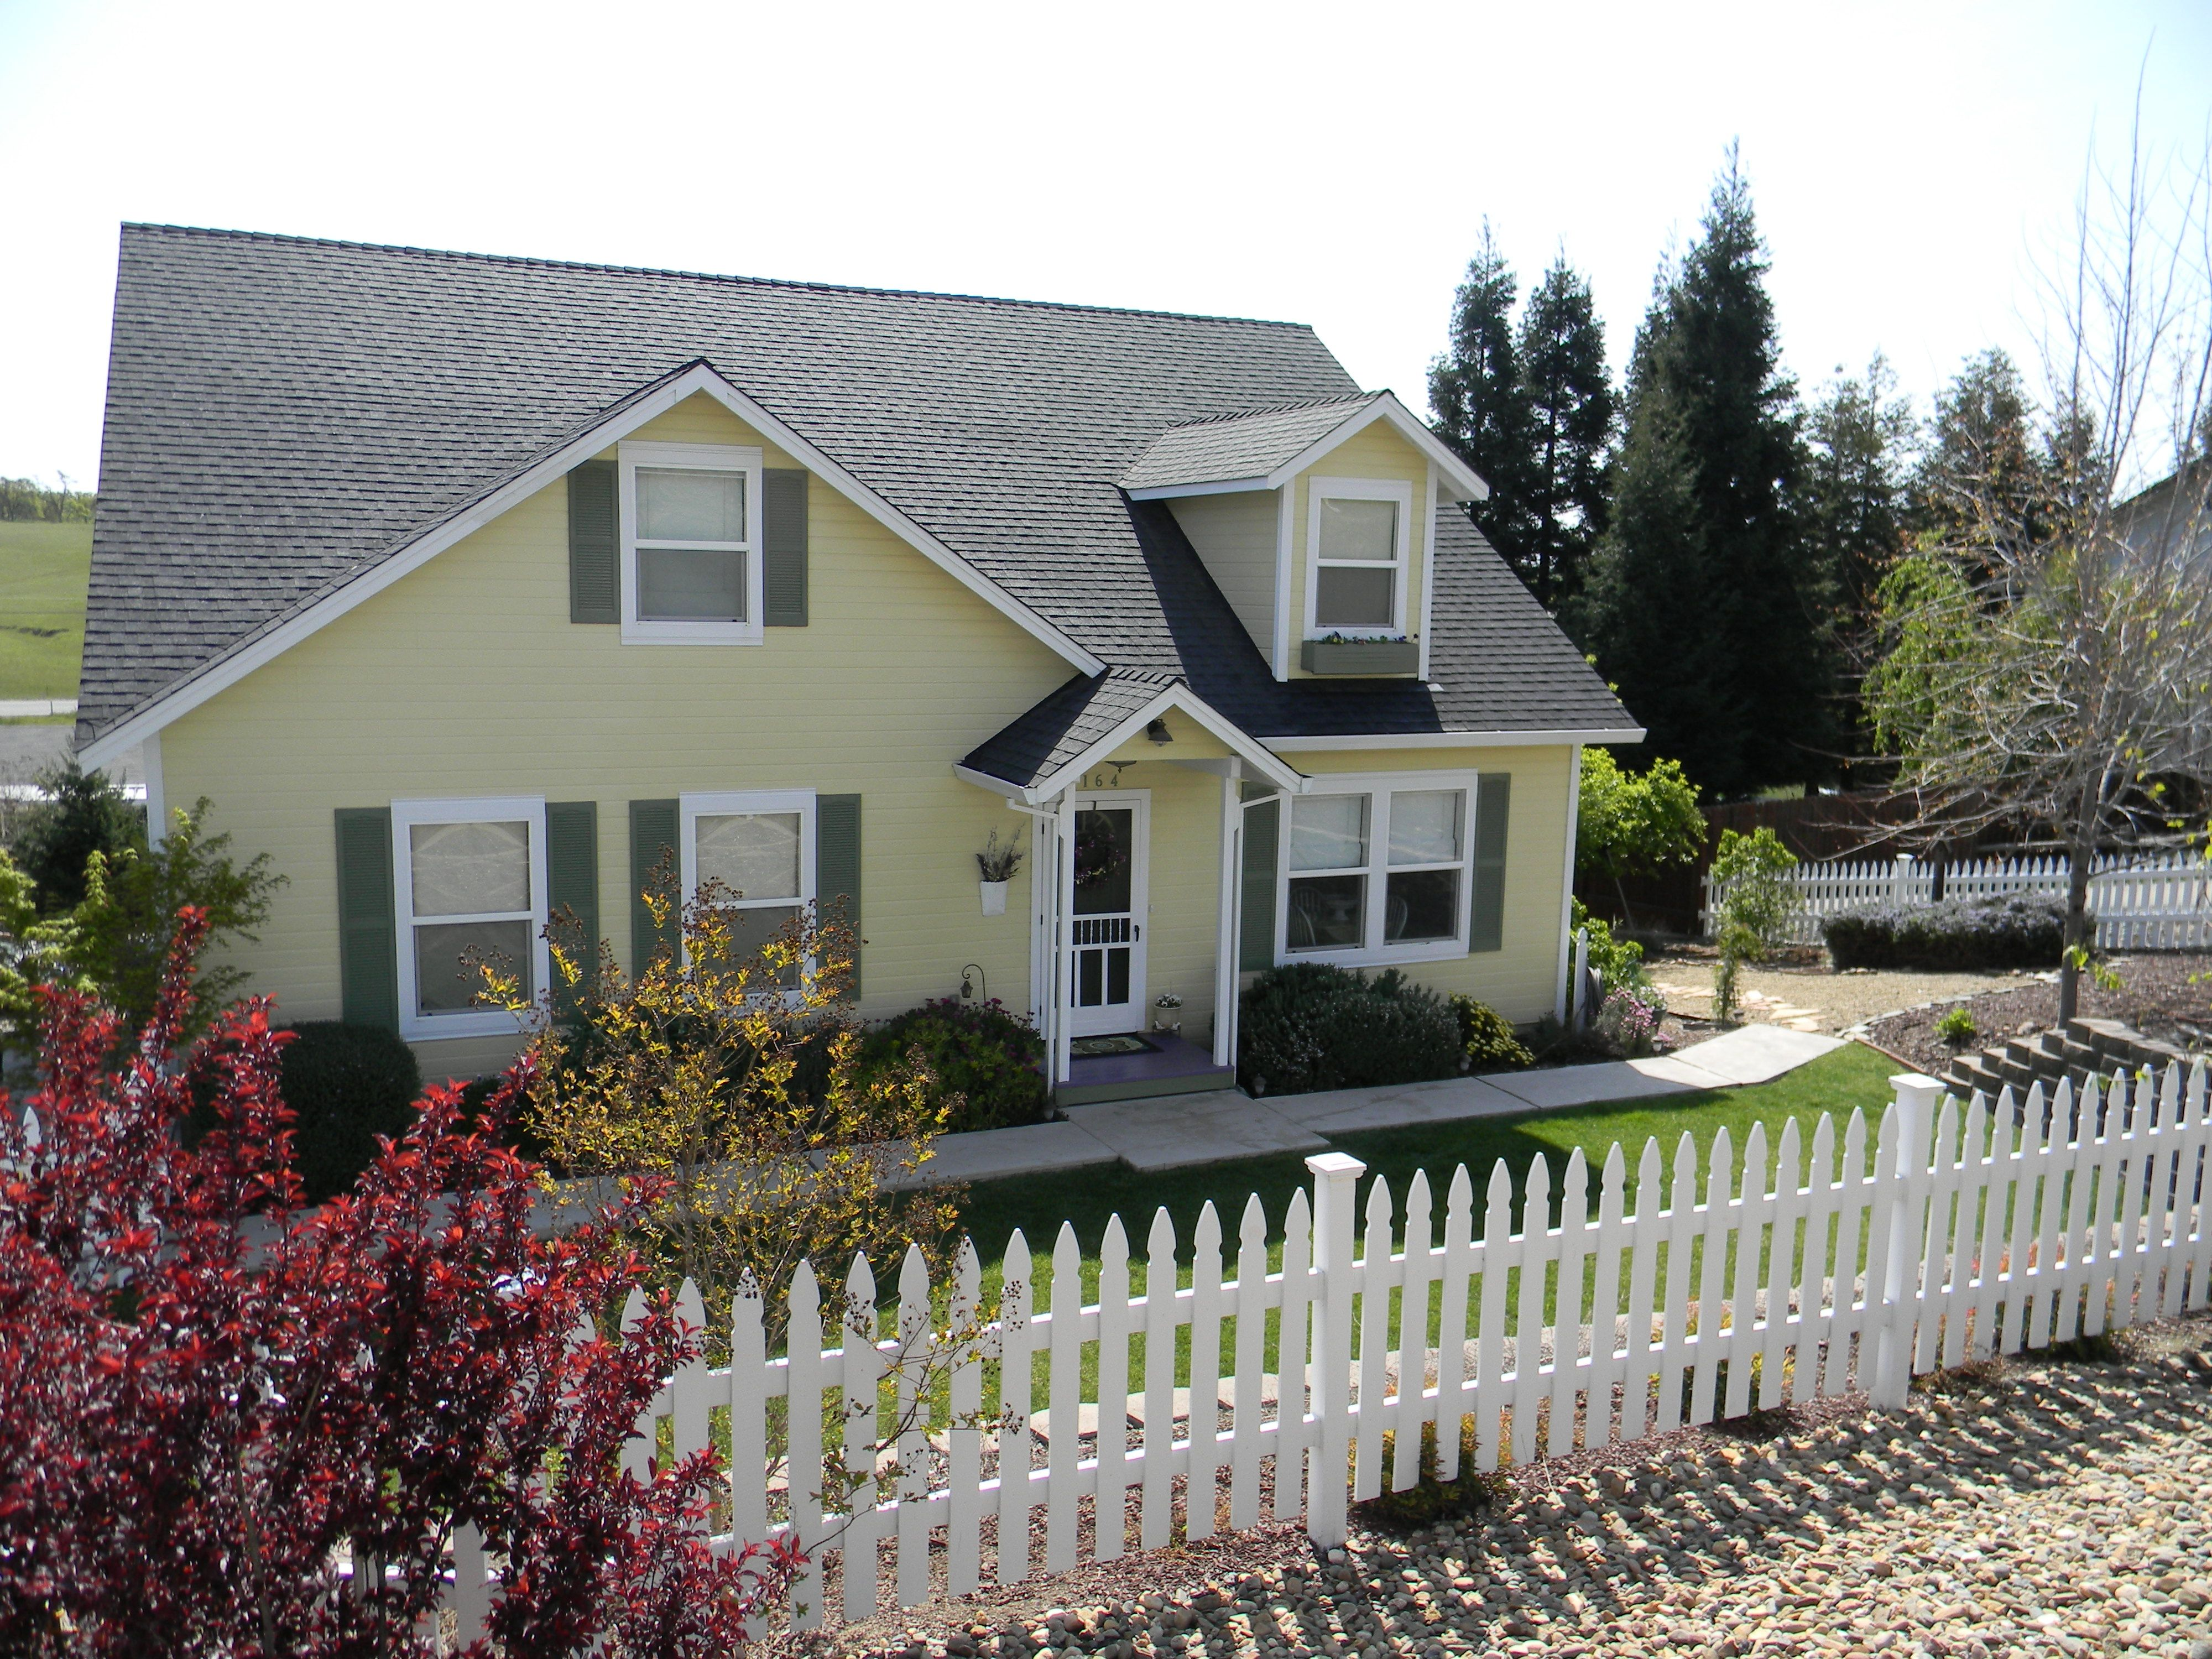 yellow house with picket fence my yellow house pinterest yellow houses fences and house. Black Bedroom Furniture Sets. Home Design Ideas